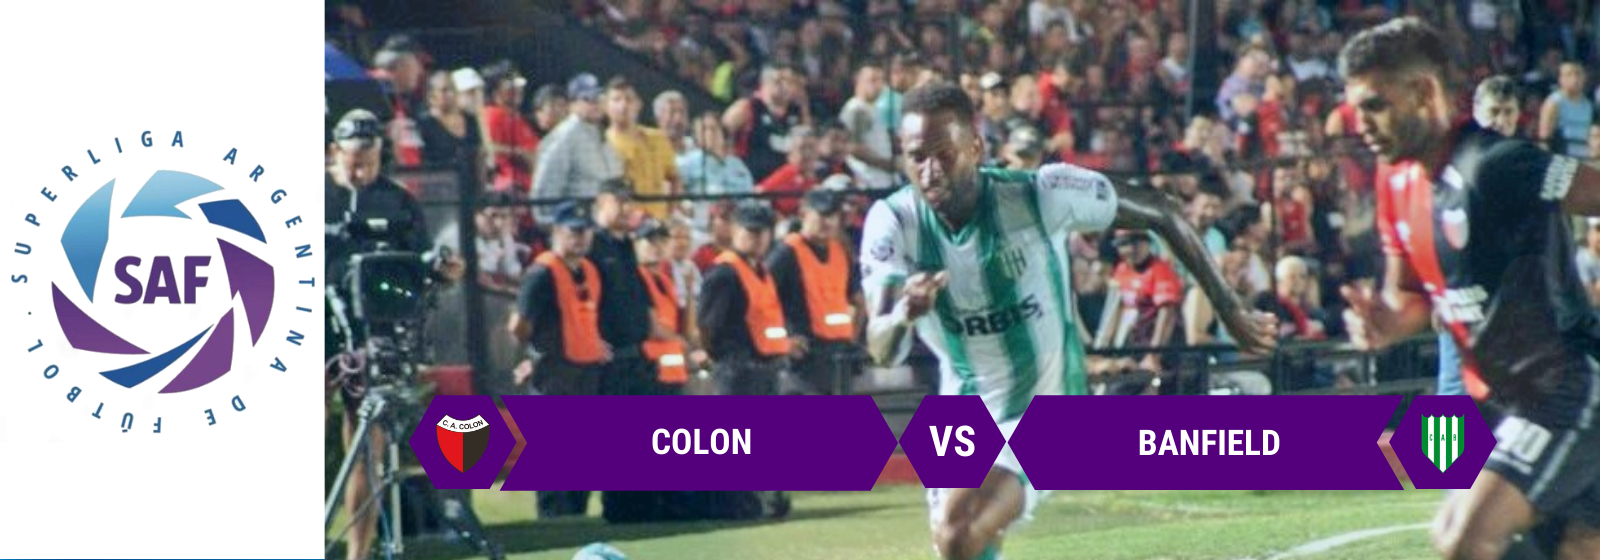 Asianconnect: Colon vs Banfield Odds for Febraury 02, 2020